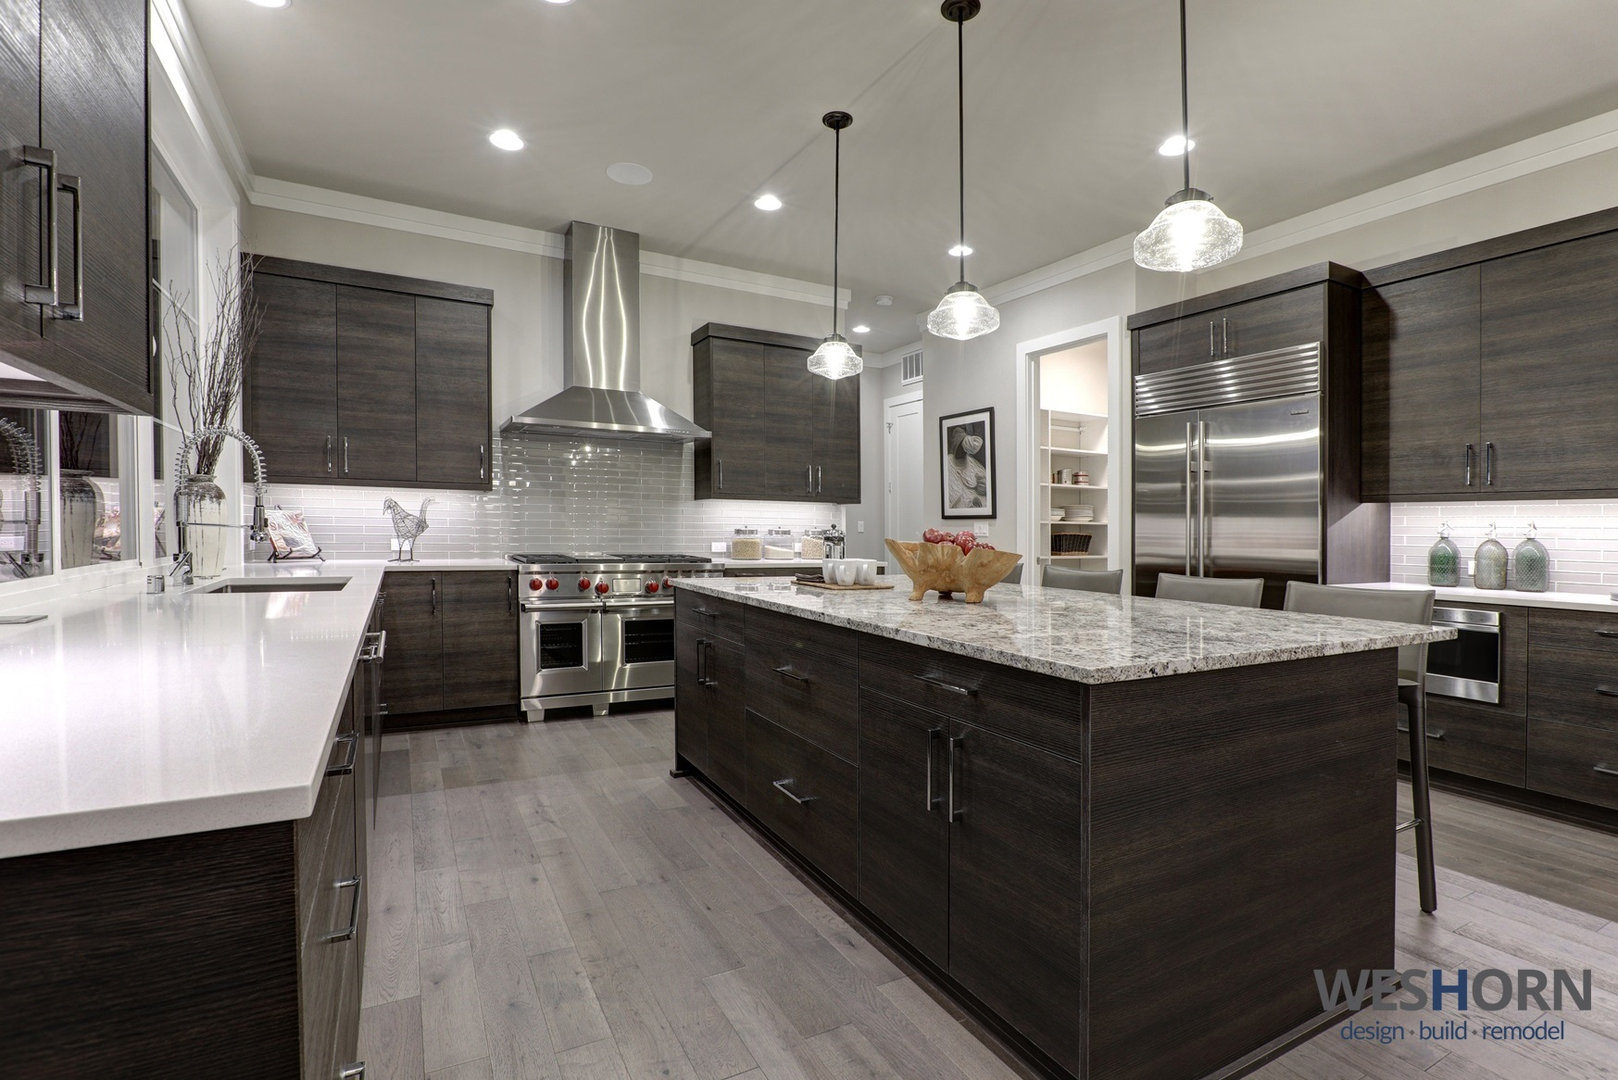 With weshorn kitchen remodeling design construction you can expect a worry free kitchen remodel experience from the start to end